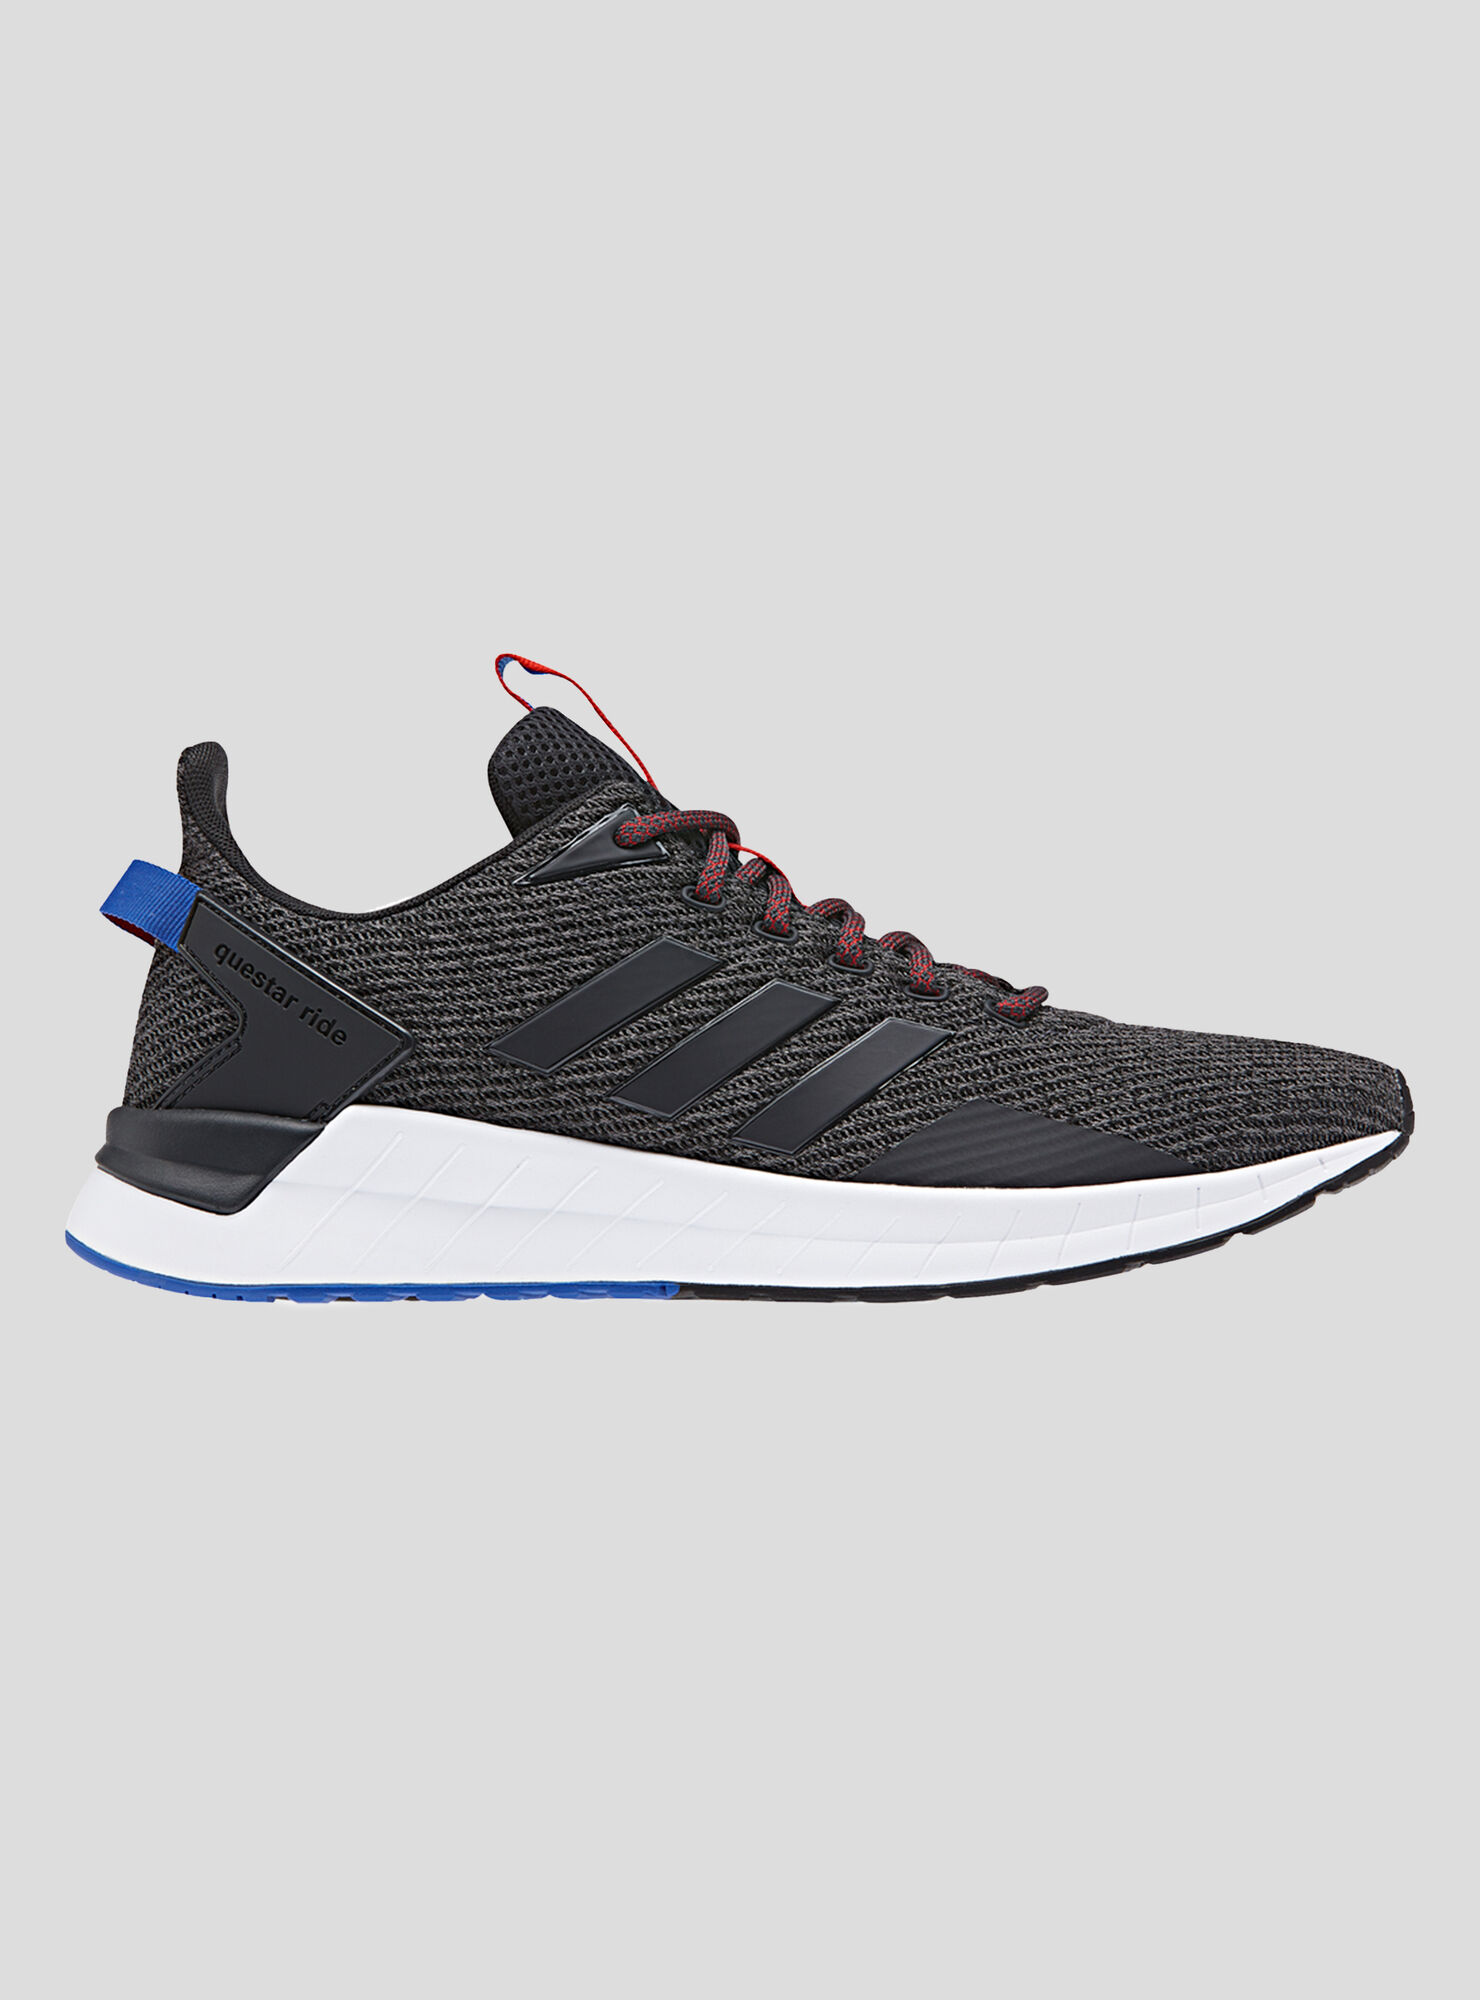 best service 10944 226be Images. Zapatilla Adidas Questar Ride Running Hombre ...